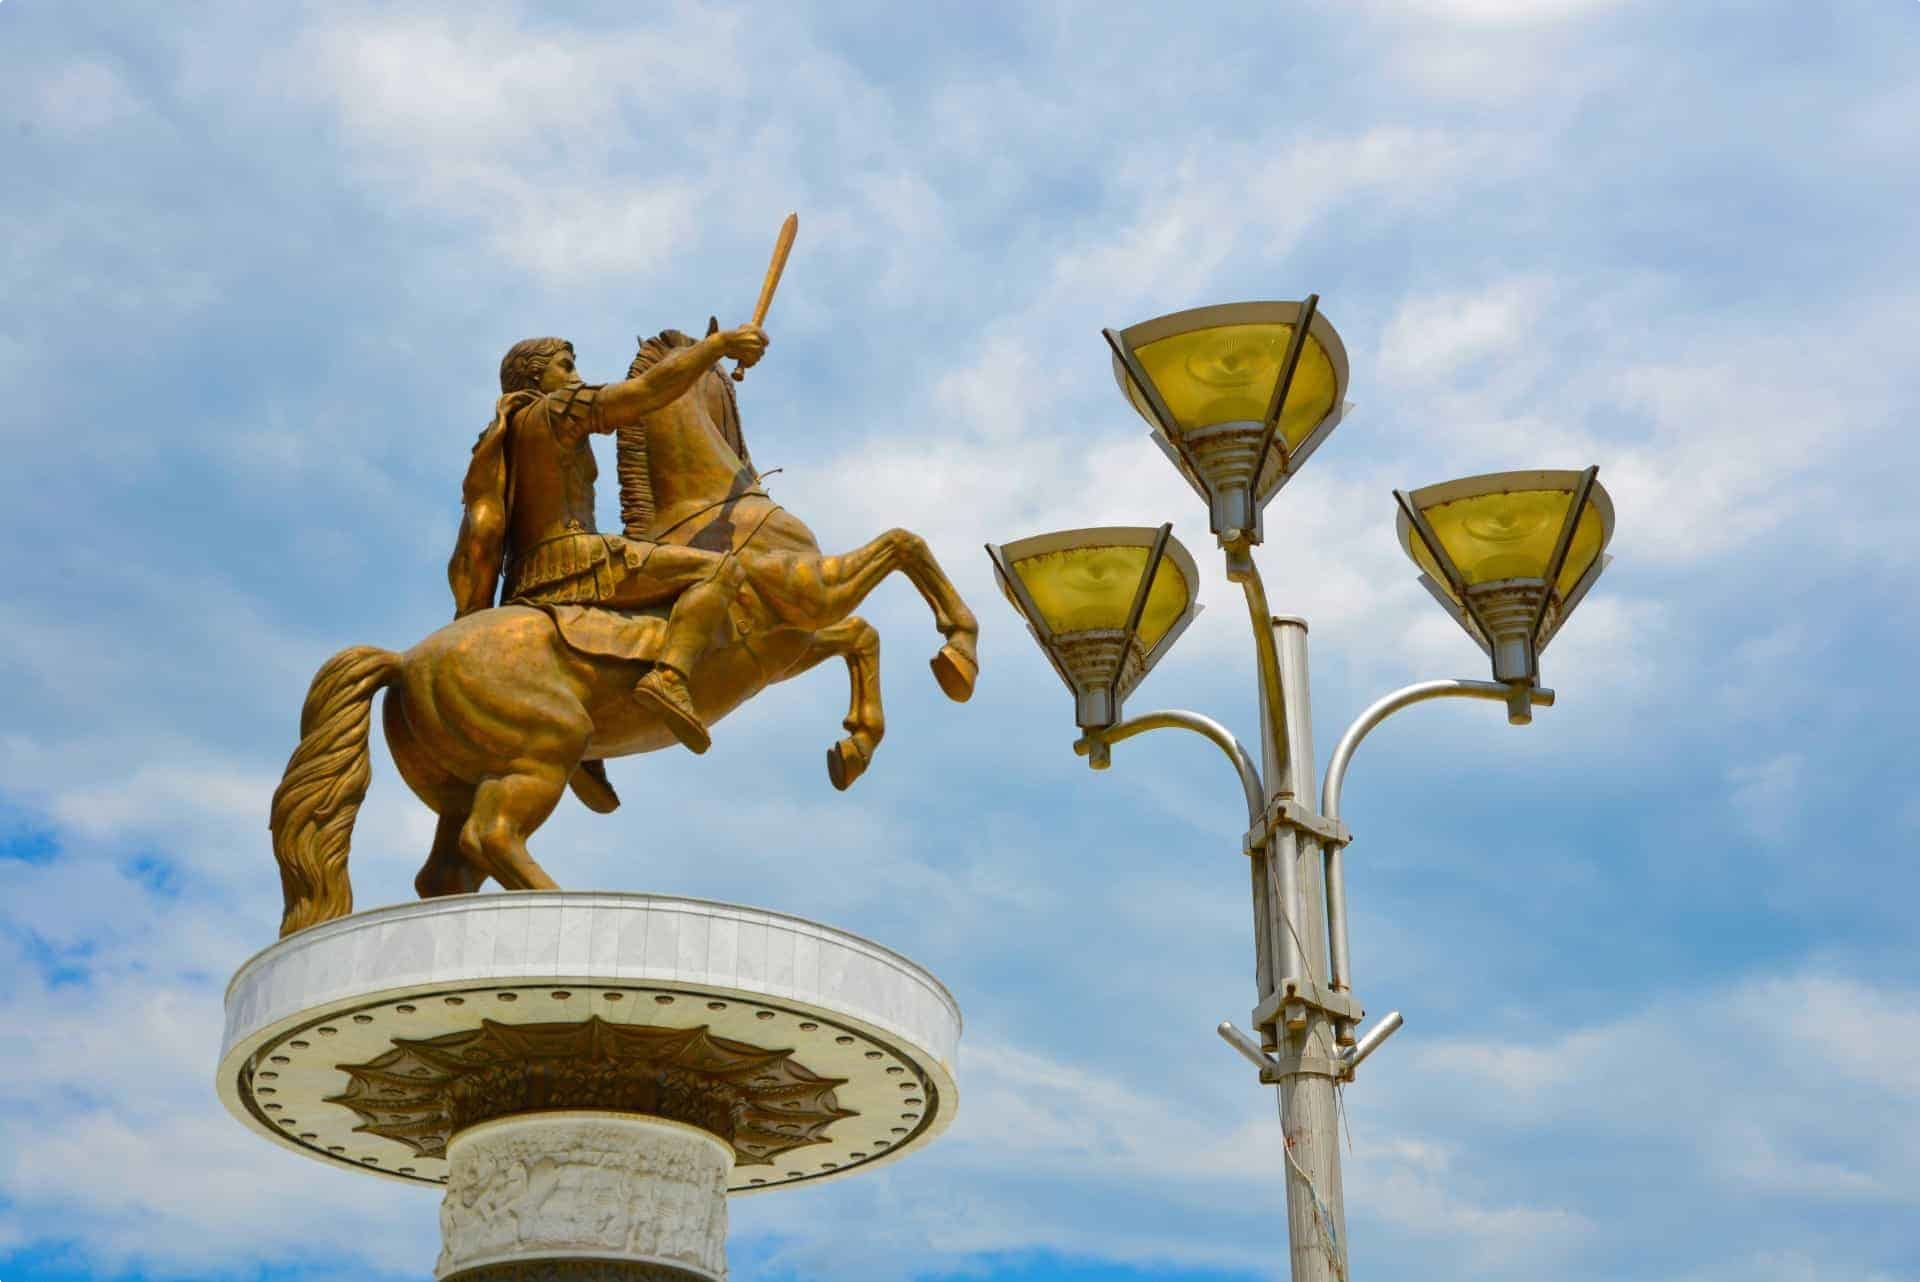 A statue depicting Alexander the Great